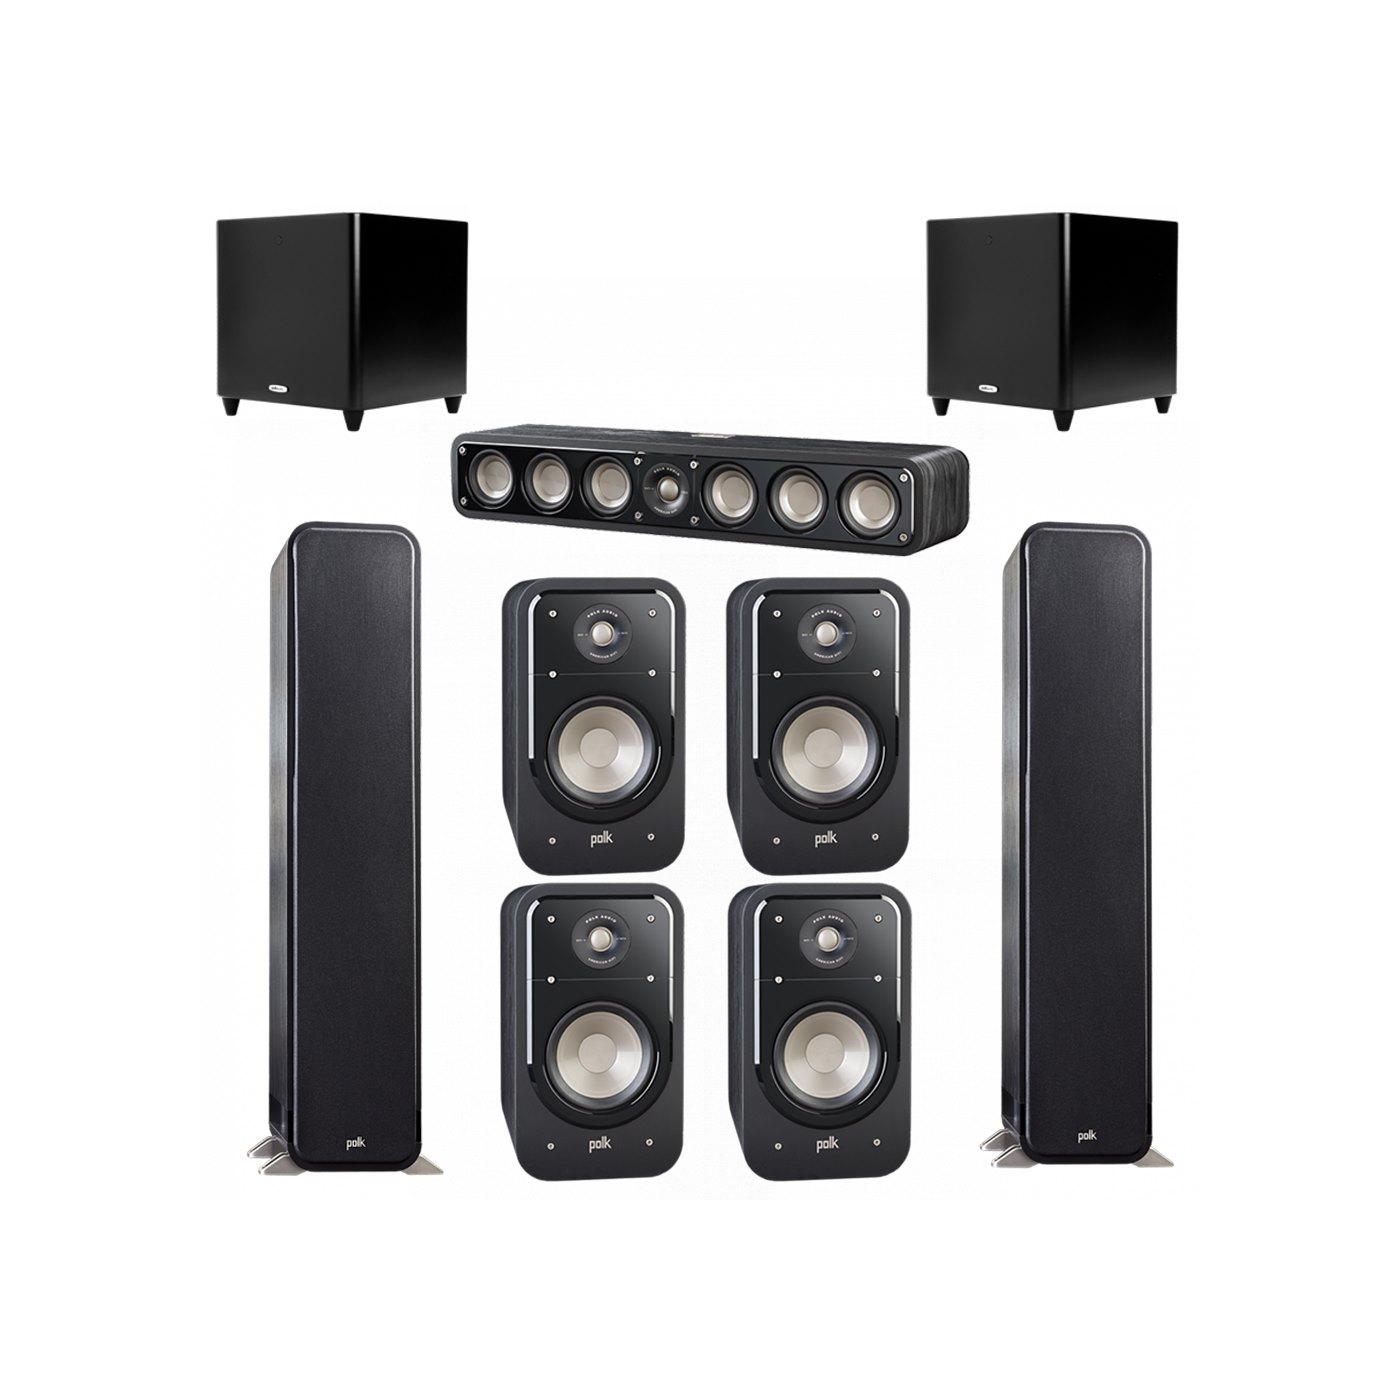 Polk Audio Signature 7.2 System with 2 S55 Tower Speaker, 1 Polk S35 Center Speaker, 4 Polk S20 Bookshelf Speaker, 2 Polk DSW PRO 660 wi Subwoofer